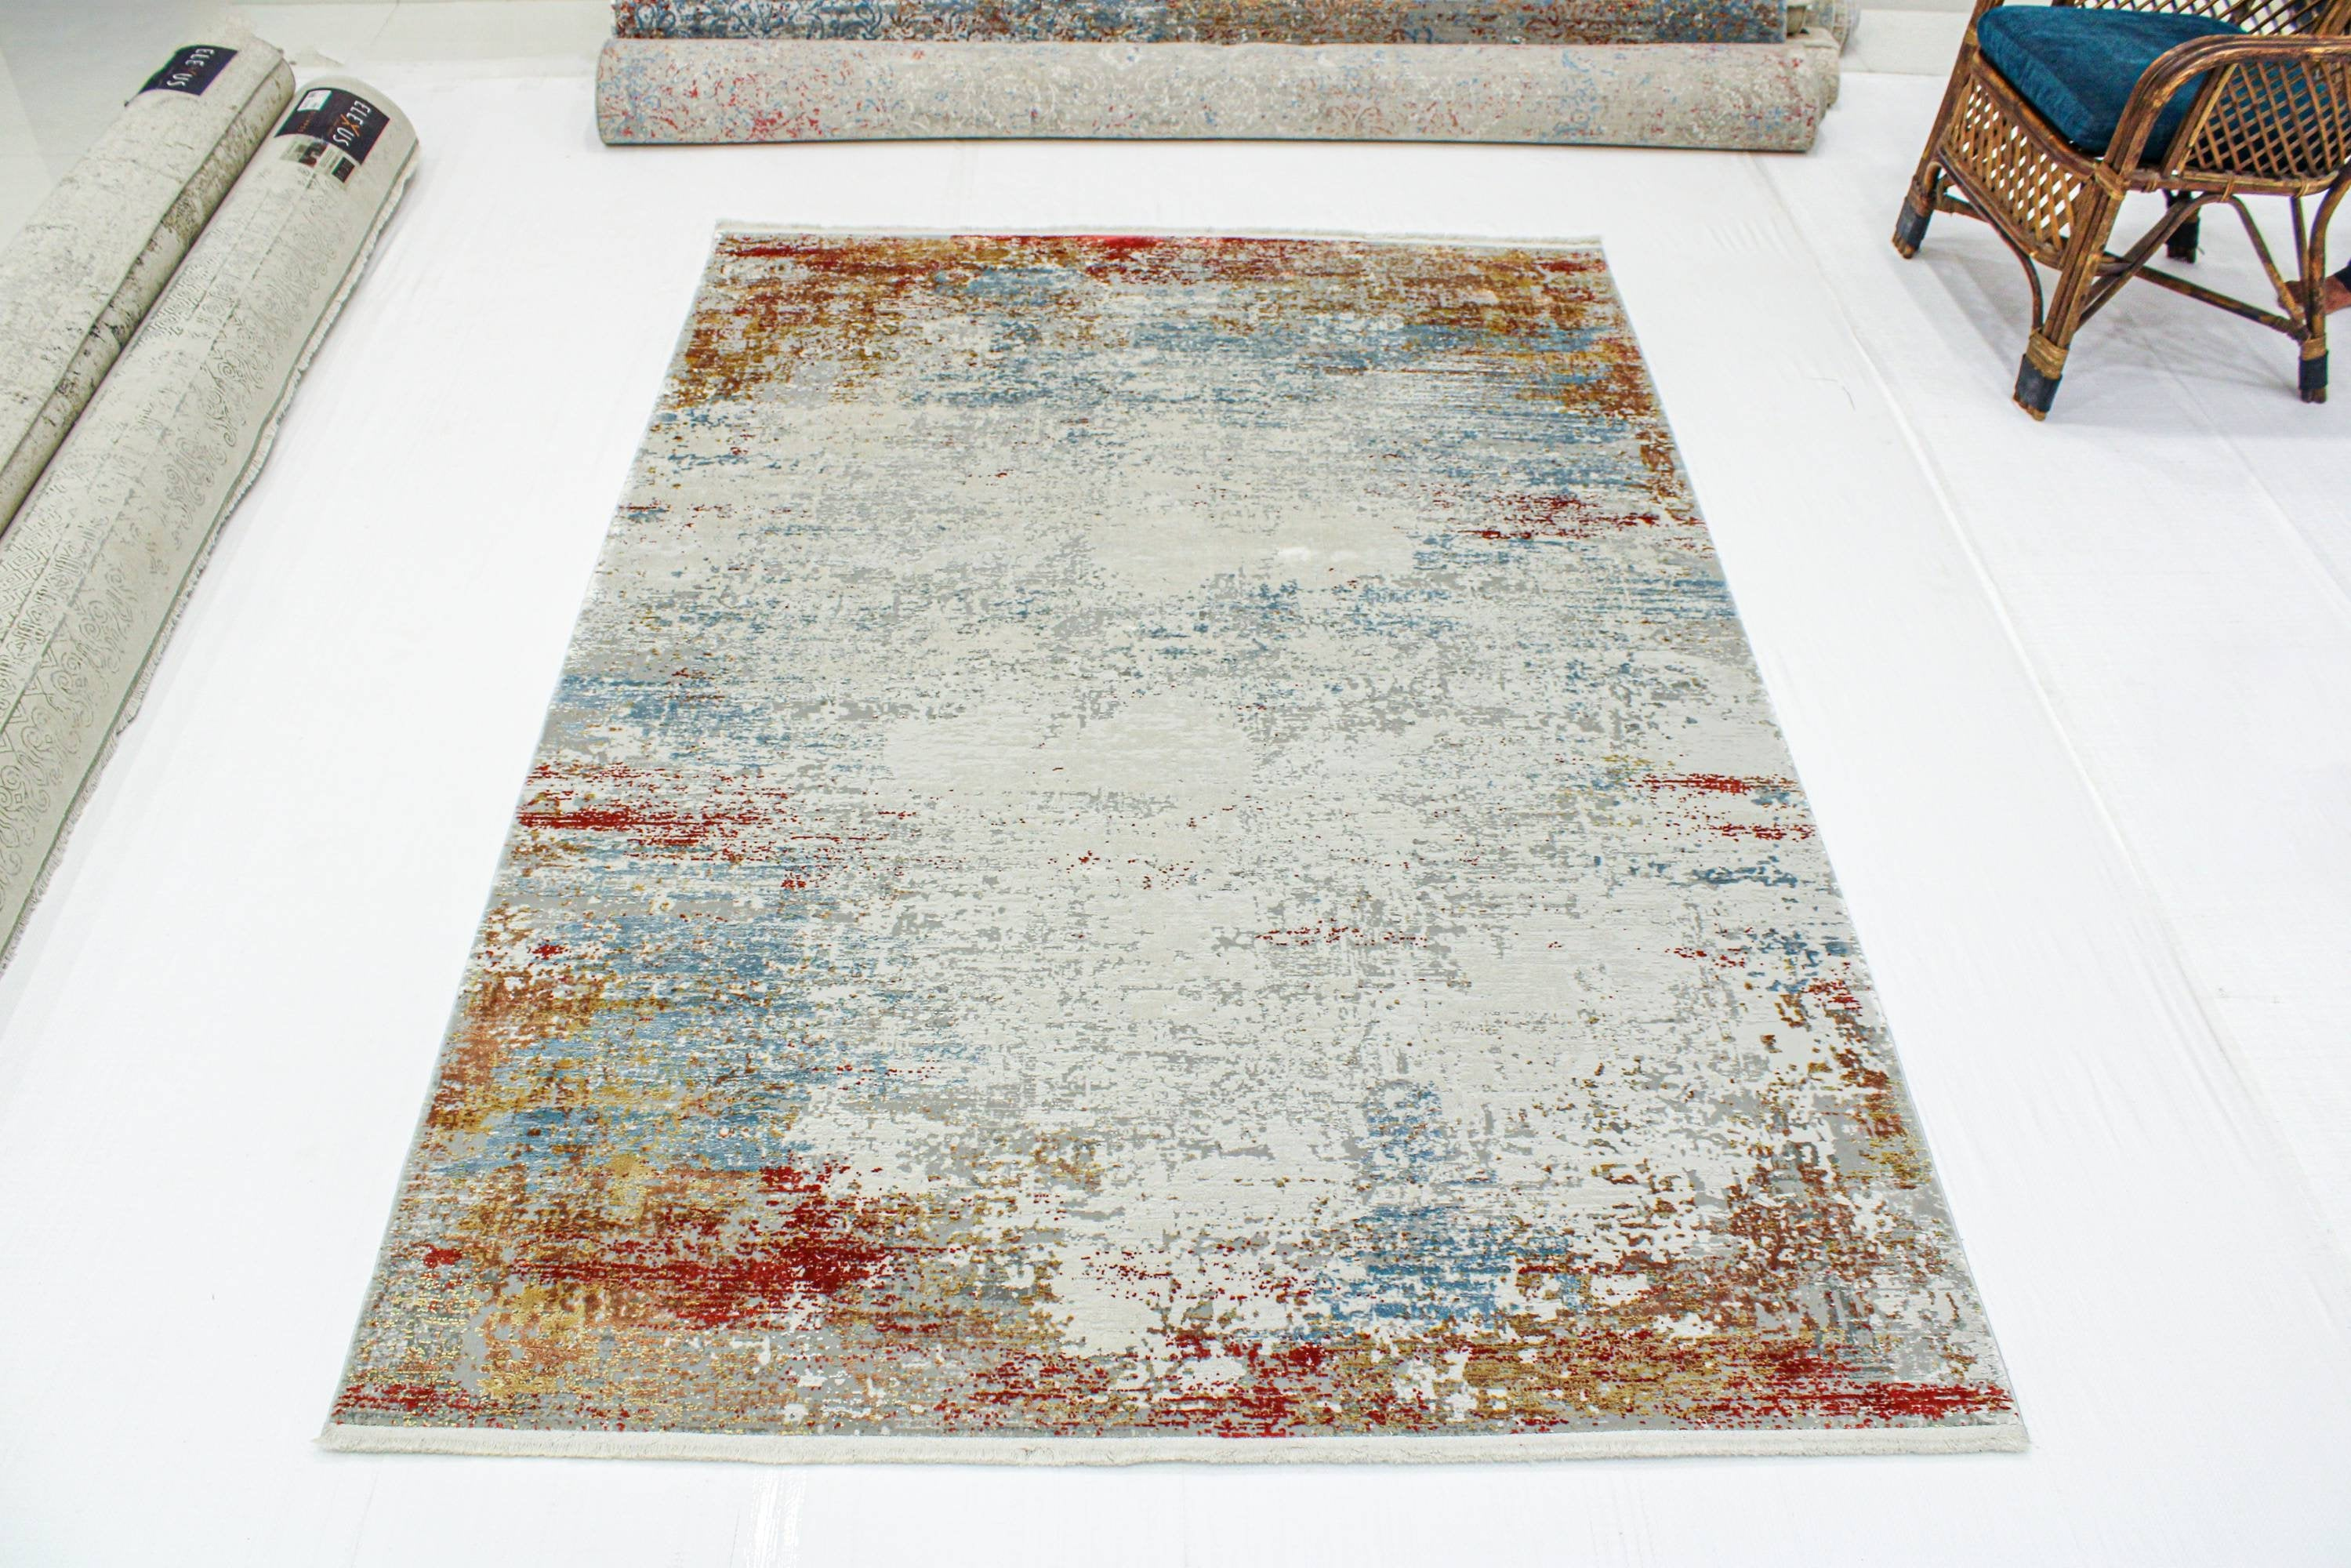 6x10 Distressed Overdyed Persian Area Rug, Living Room Rug, Room decor vintage Oriental Rug, kitchen decor Tribal Wool Rug, SKU:1945